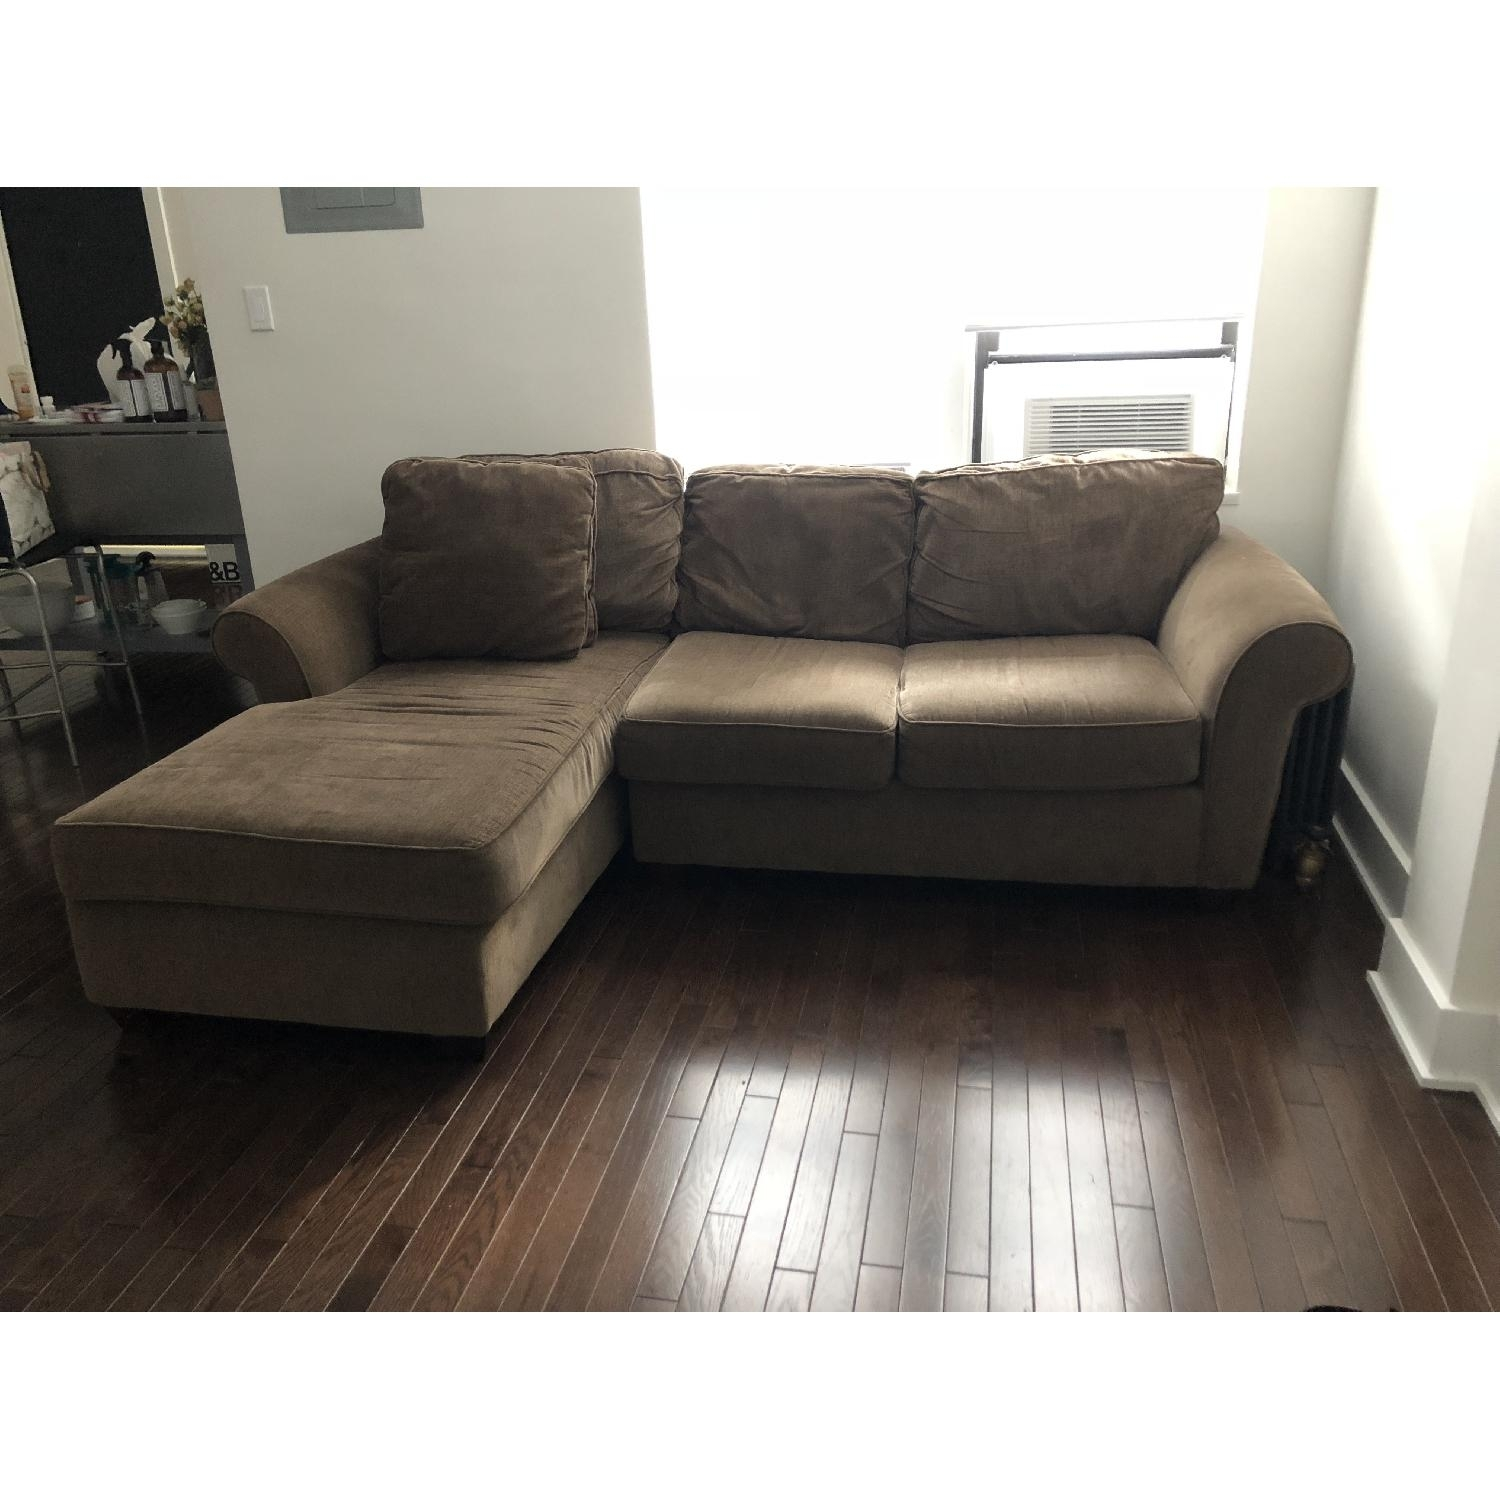 2 Piece Chaise Sectional Sofa | Baci Living Room pertaining to Tenny Cognac 2 Piece Left Facing Chaise Sectionals With 2 Headrest (Image 1 of 30)